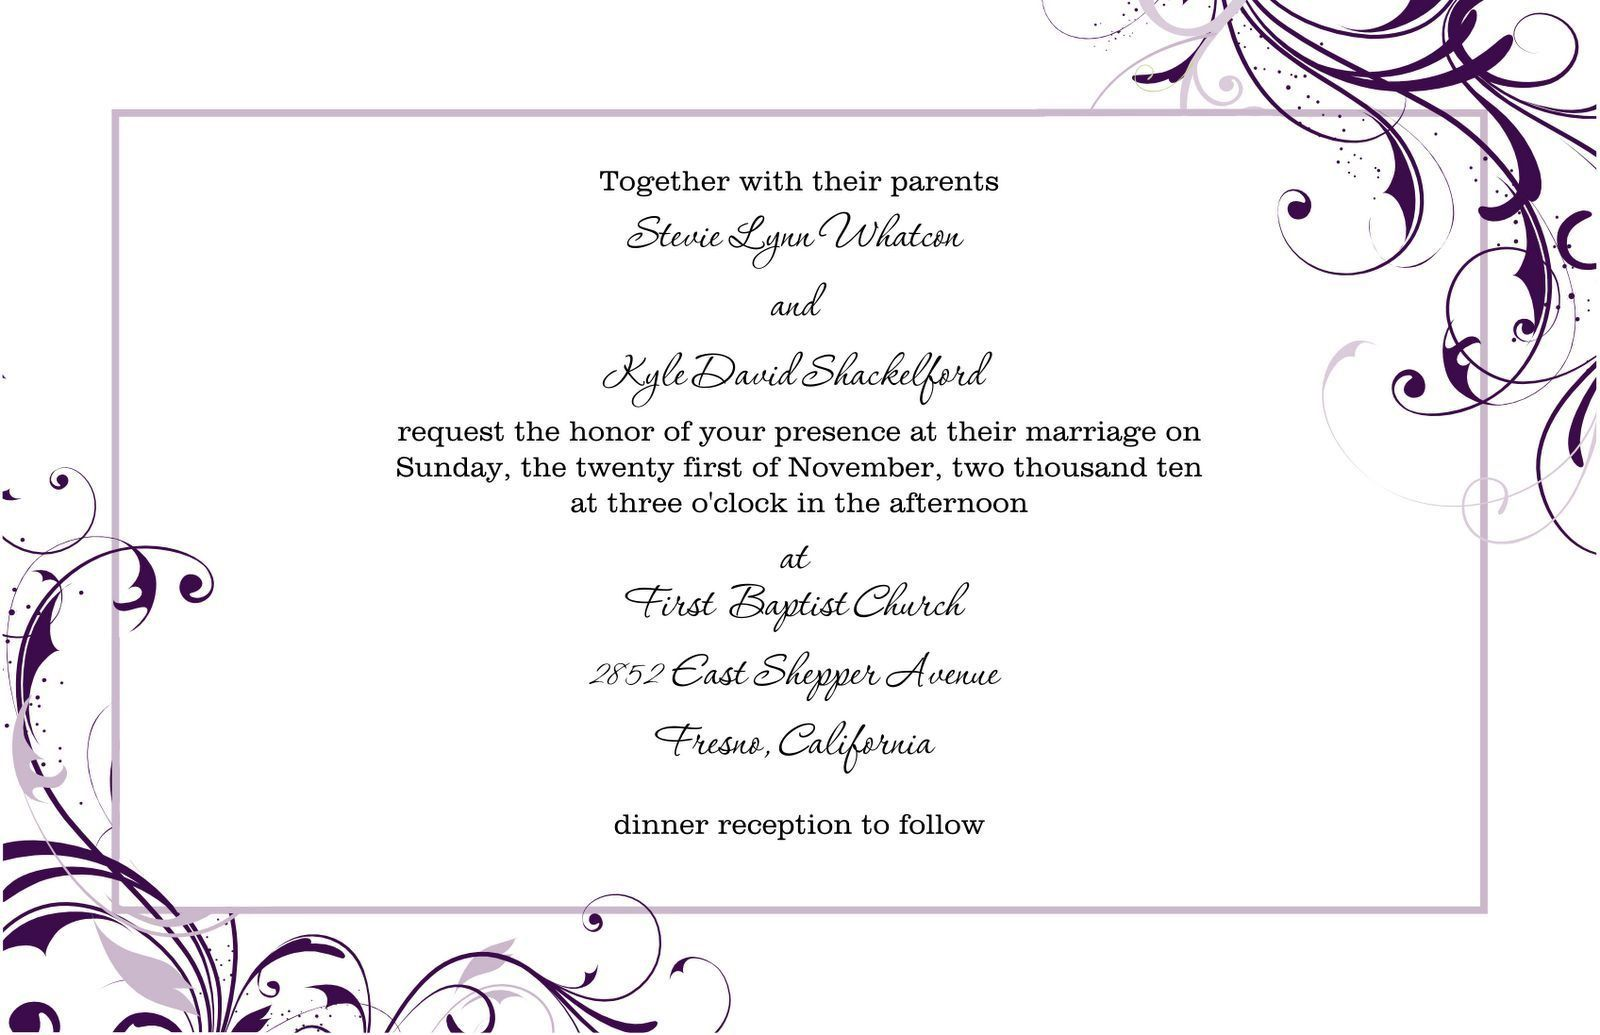 005 Incredible Microsoft Office Invitation Template Example  Templates Holiday Party PublisherFull